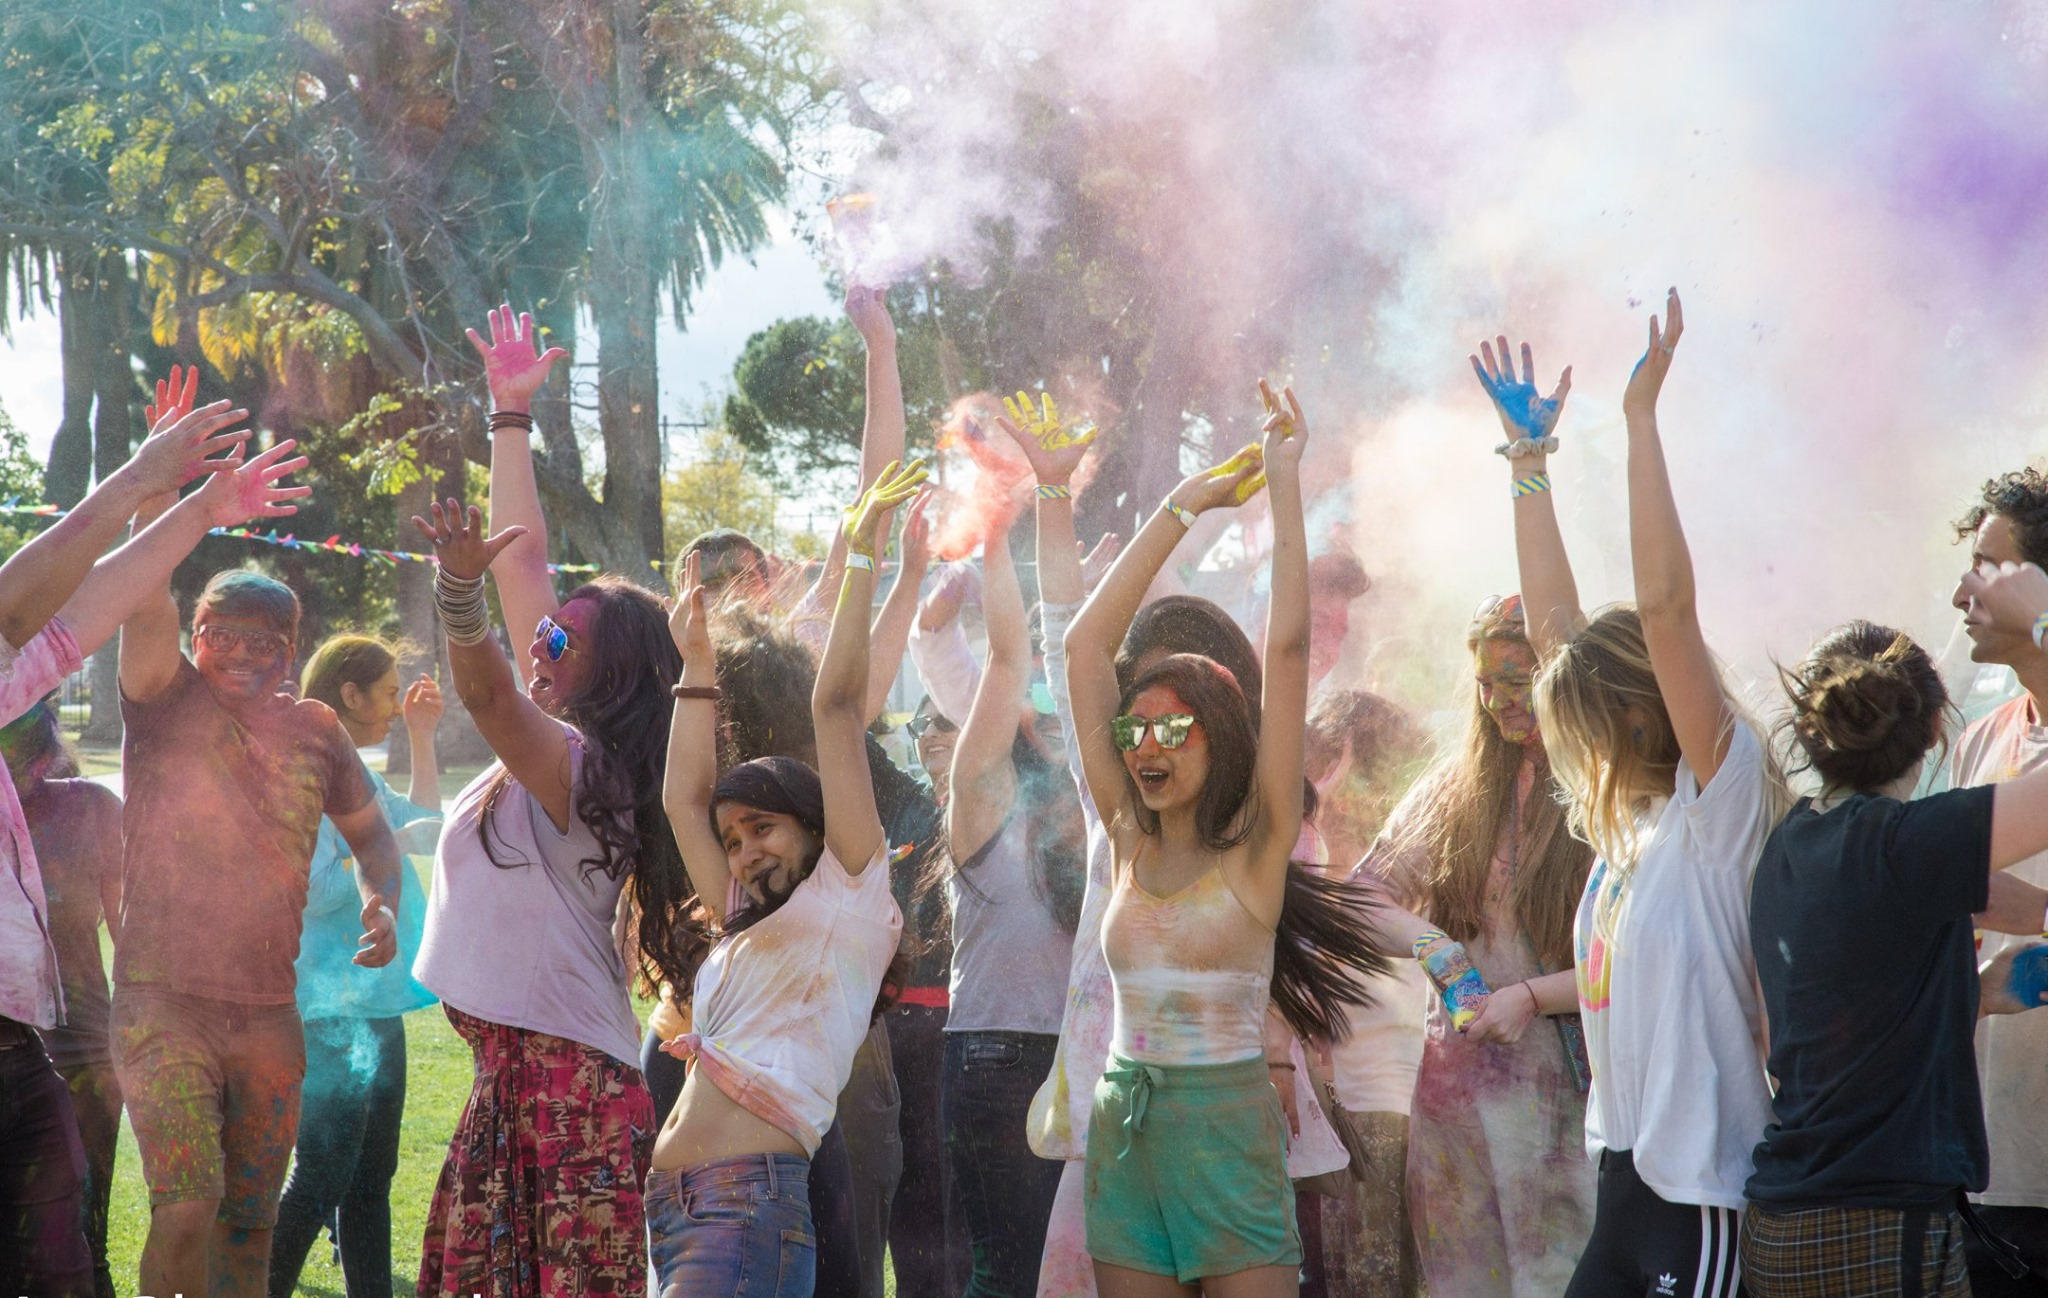 HOLI 2020 - Festival of Colors - Anaheim, CA